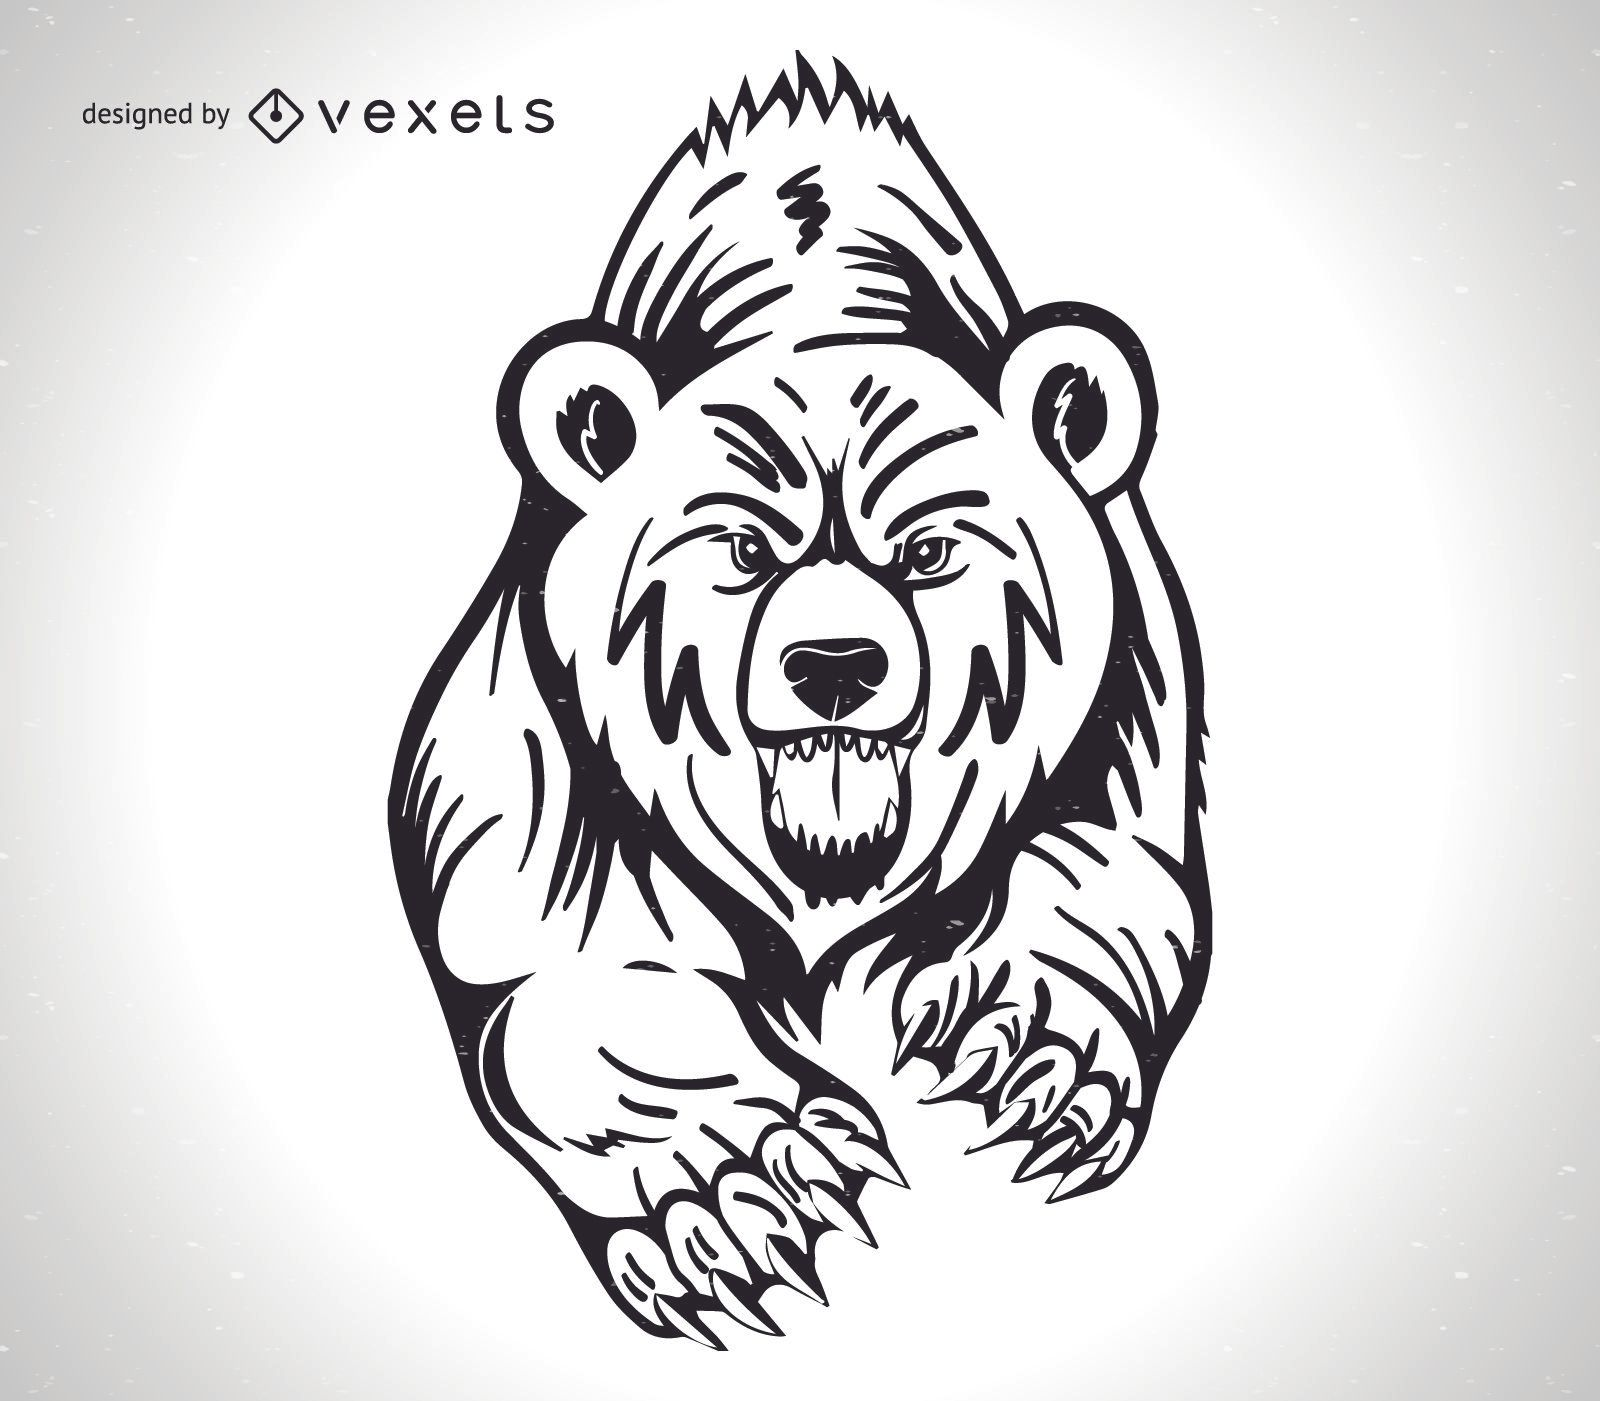 Angry Grizzly Bear Design